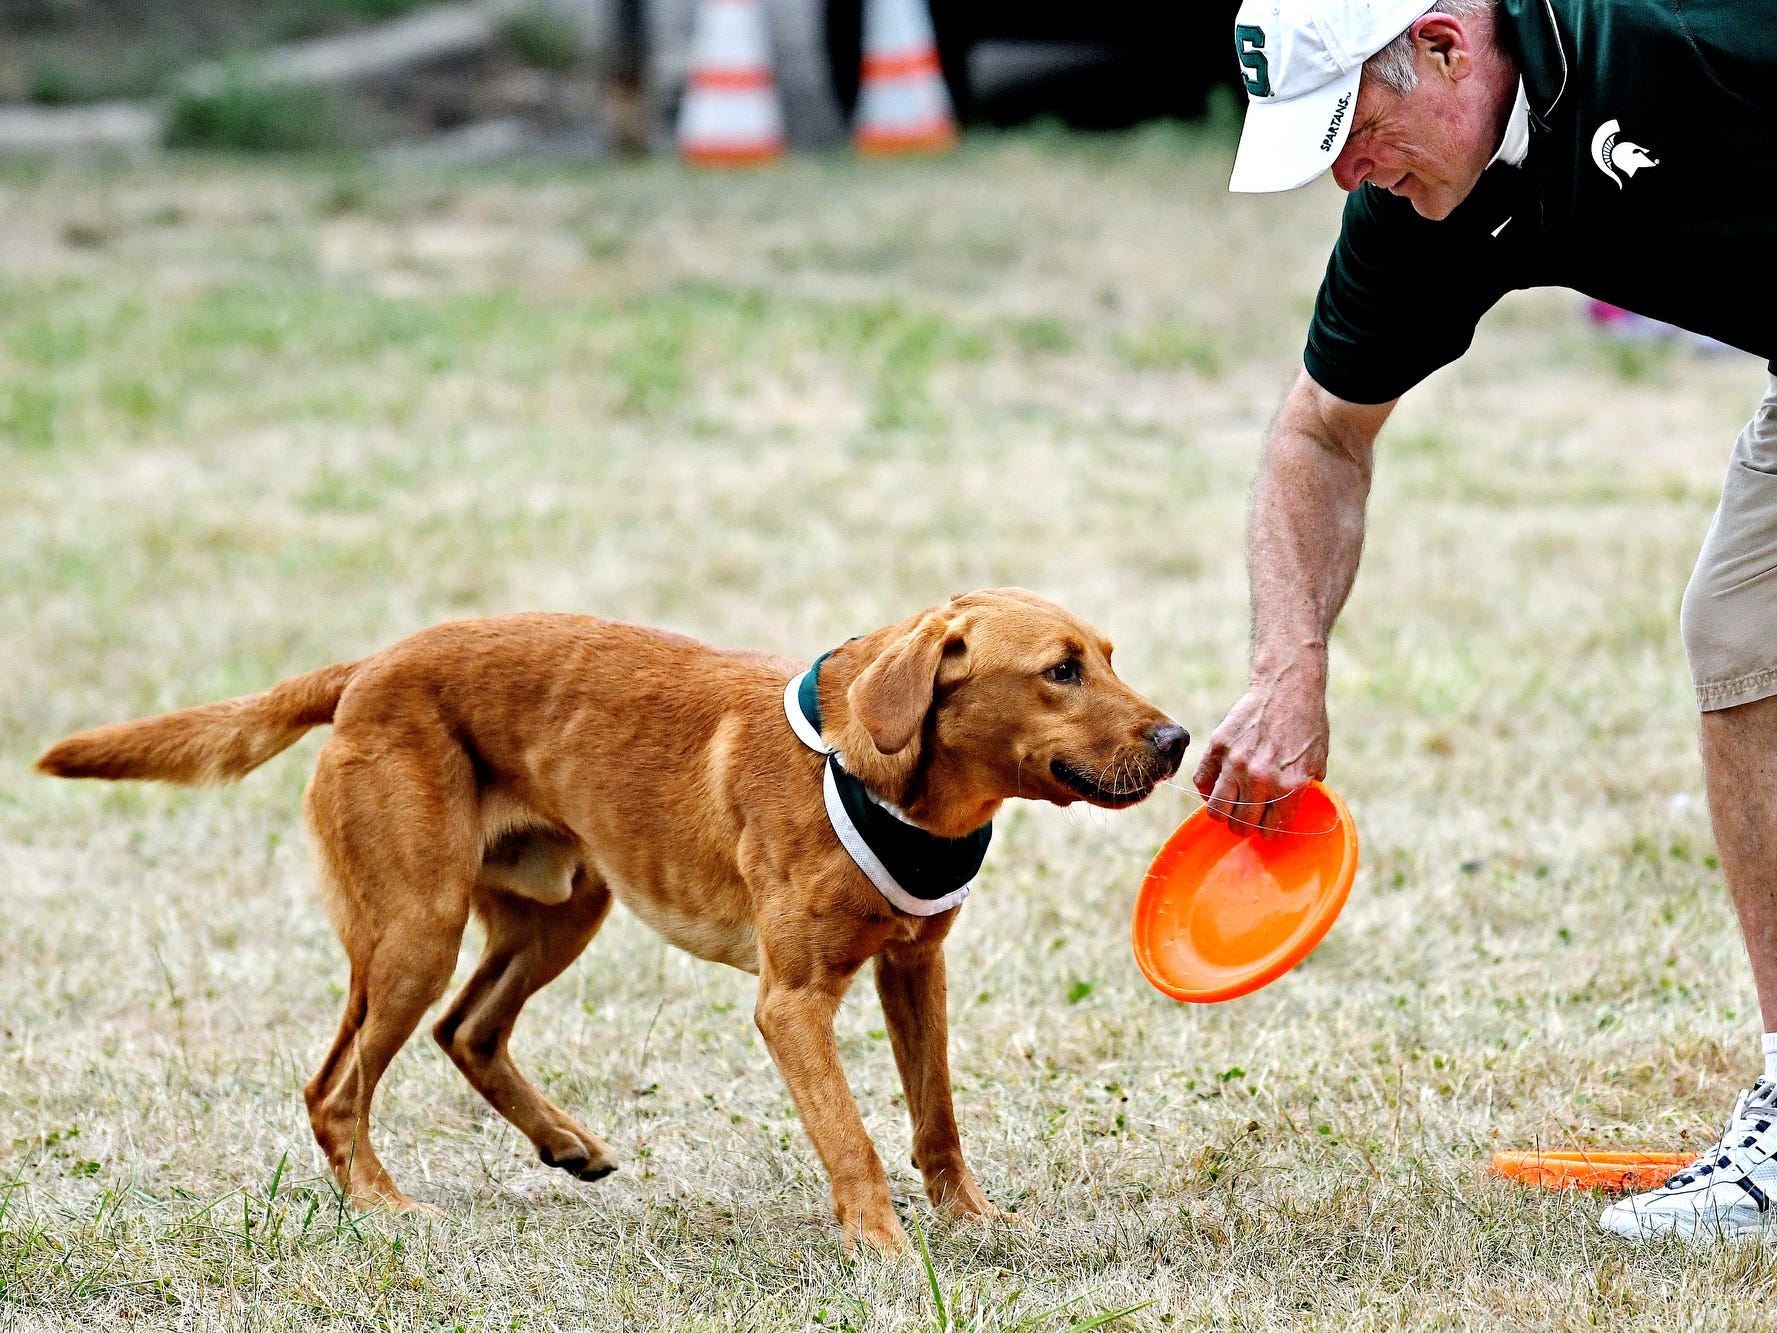 Zeke the Wonderdog IV looks on as and his caretaker Jim Foley prepares to throw it during Play in the Park on Tuesday, July 31, 2018, at Valley Court Park in East Lansing.